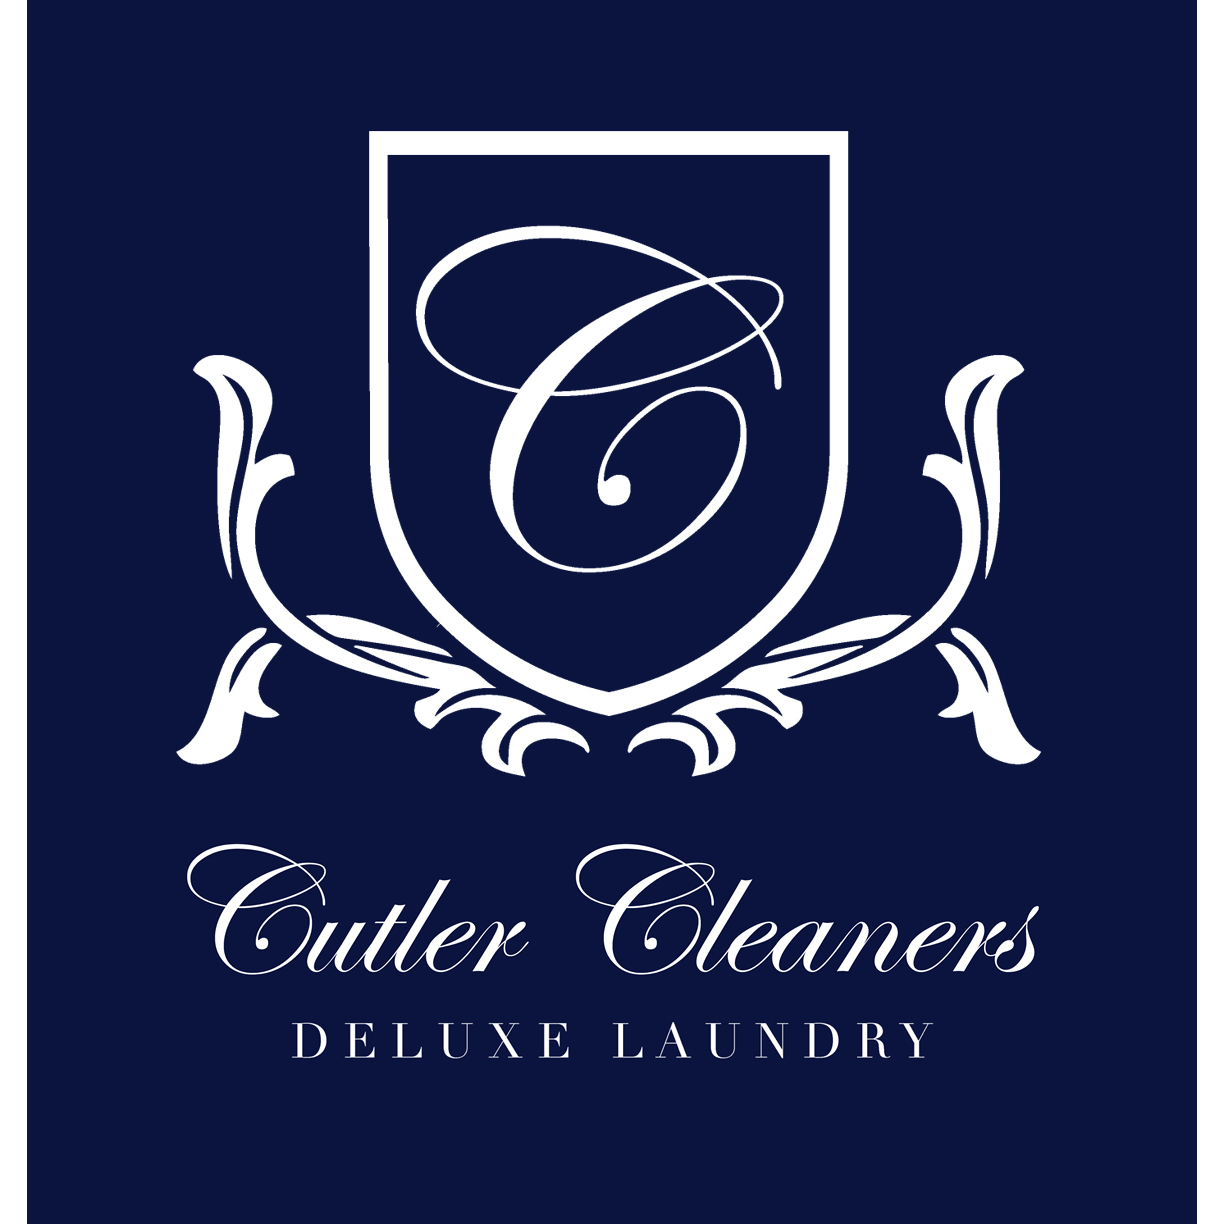 Cutler Cleaners